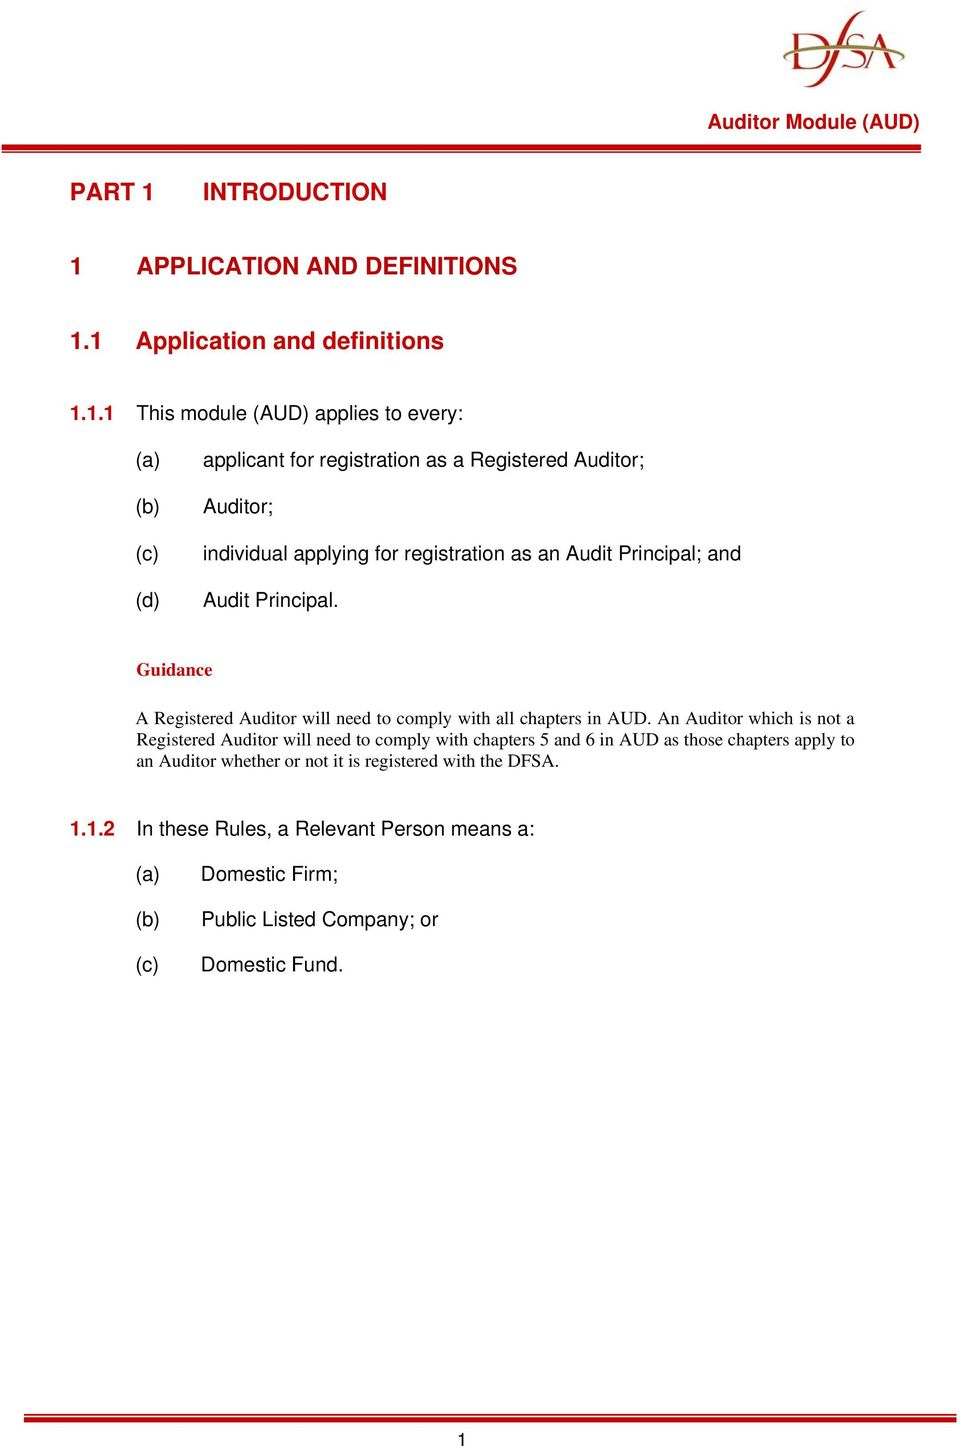 APPLICATION AND DEFINITIONS 1.